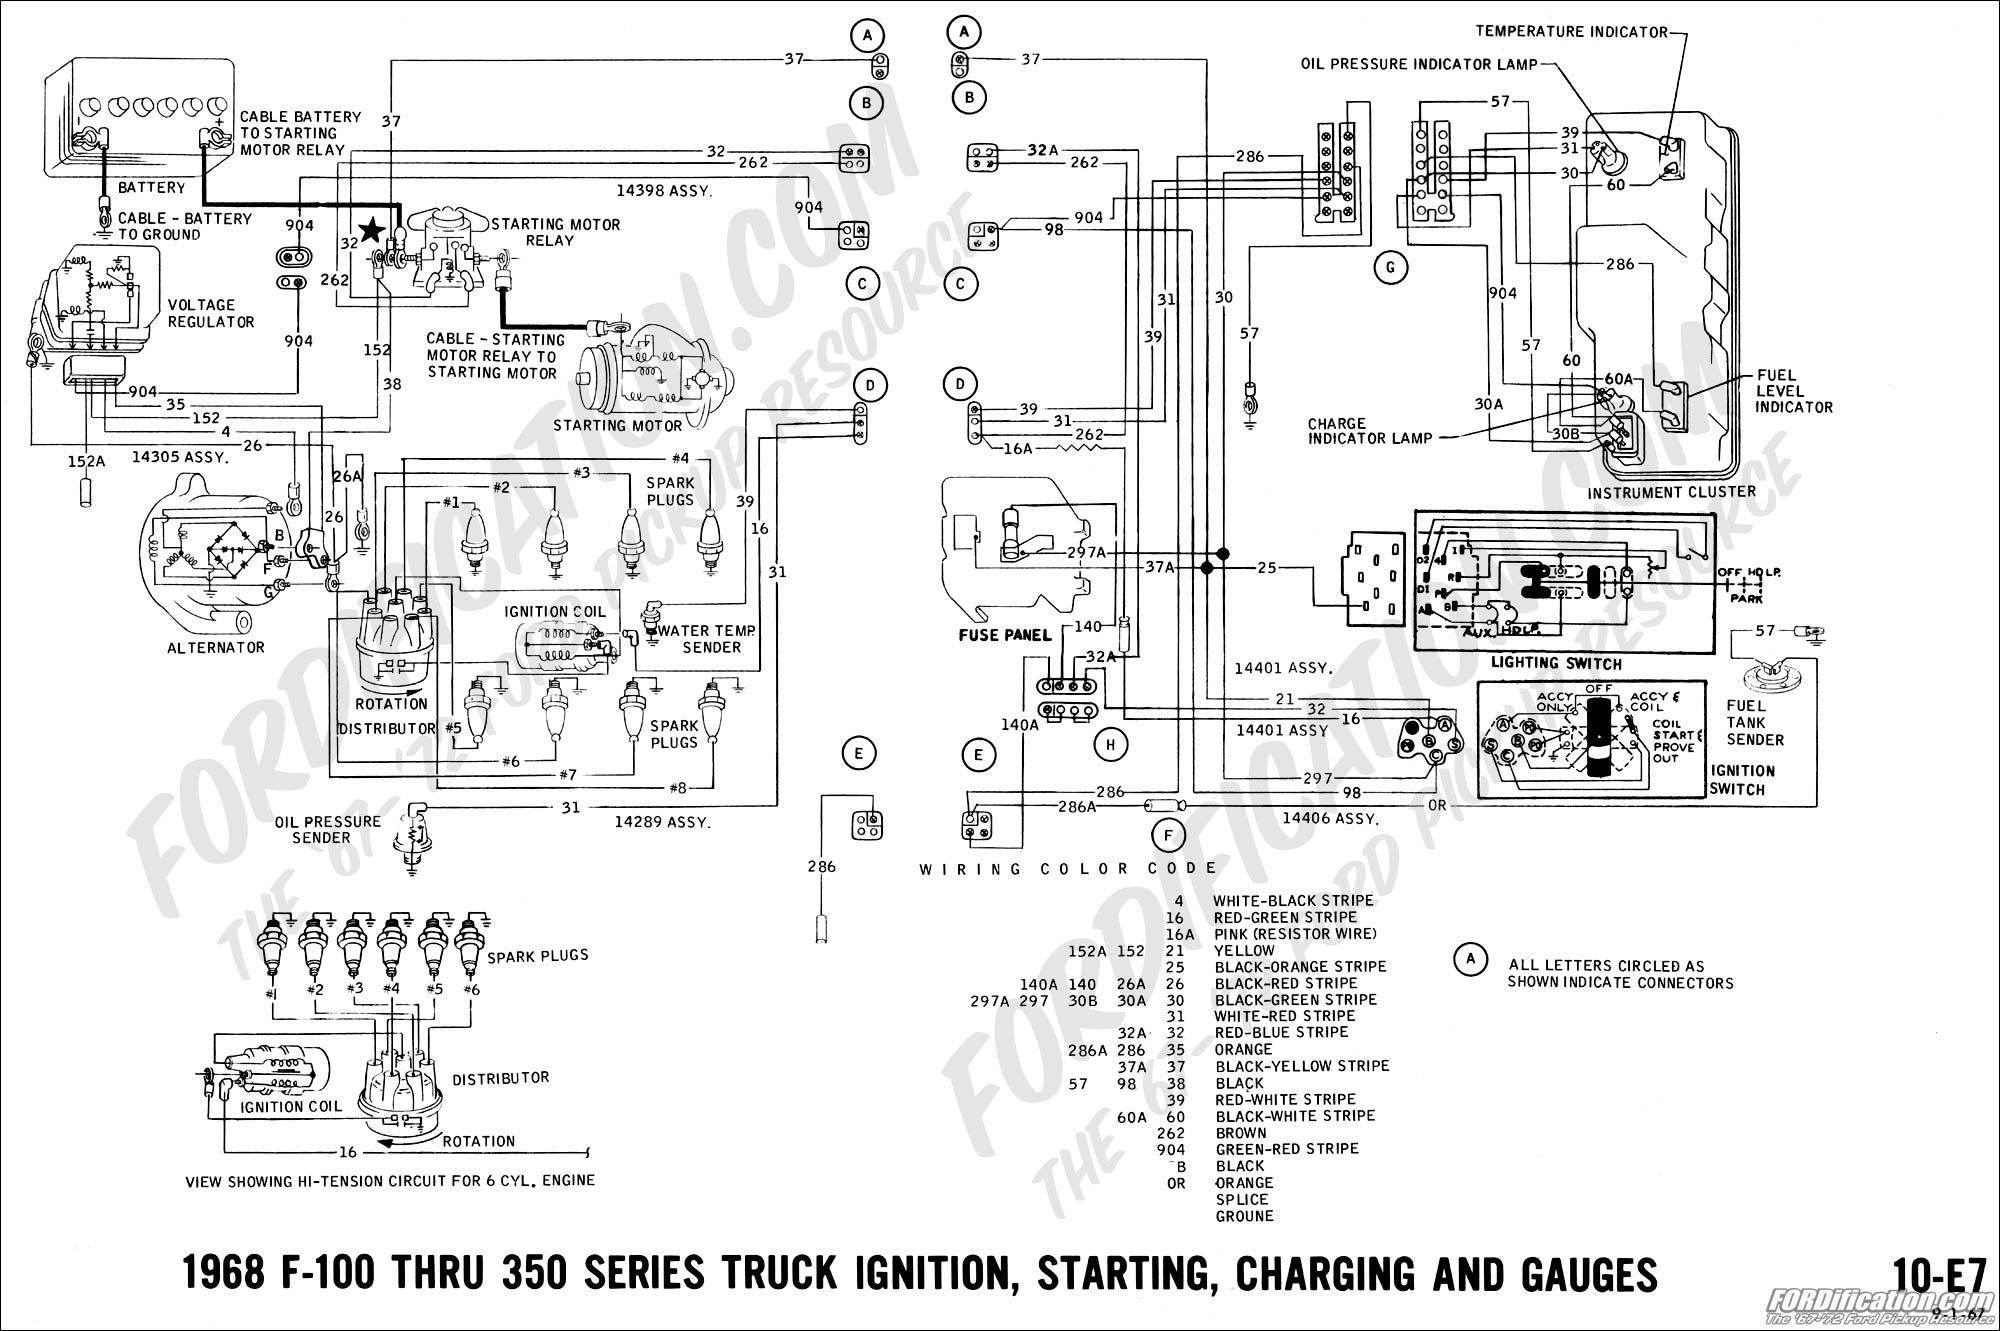 Ford 302 Distributor Wiring Diagram 35 Images 1975 Maverick 68 09 Truck Technical Drawings And Schematics Section H